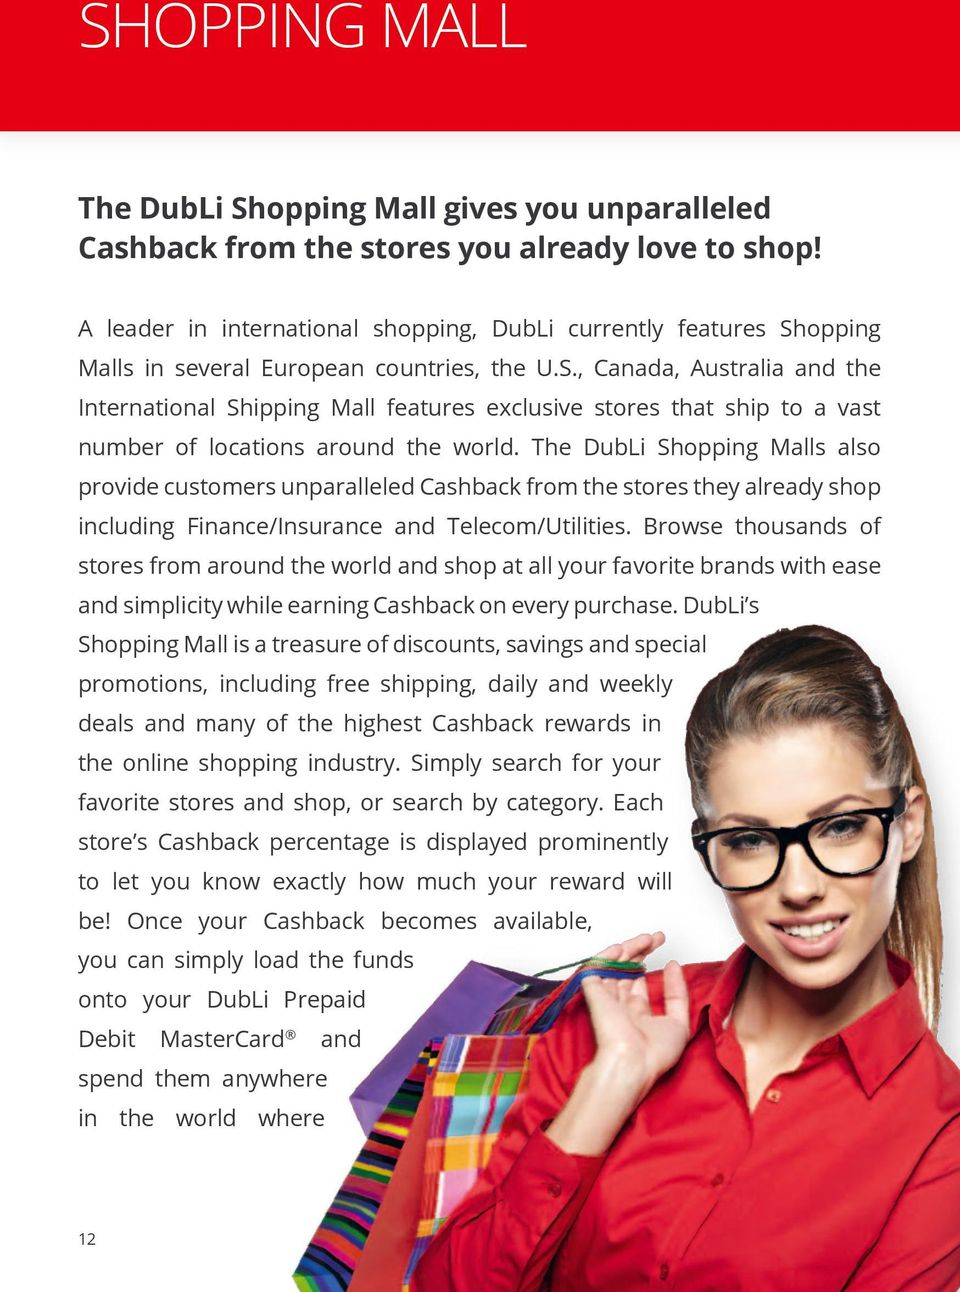 opping Malls in several European countries, the U.S., Canada, Australia and the International Shipping Mall features exclusive stores that ship to a vast number of locations around the world.